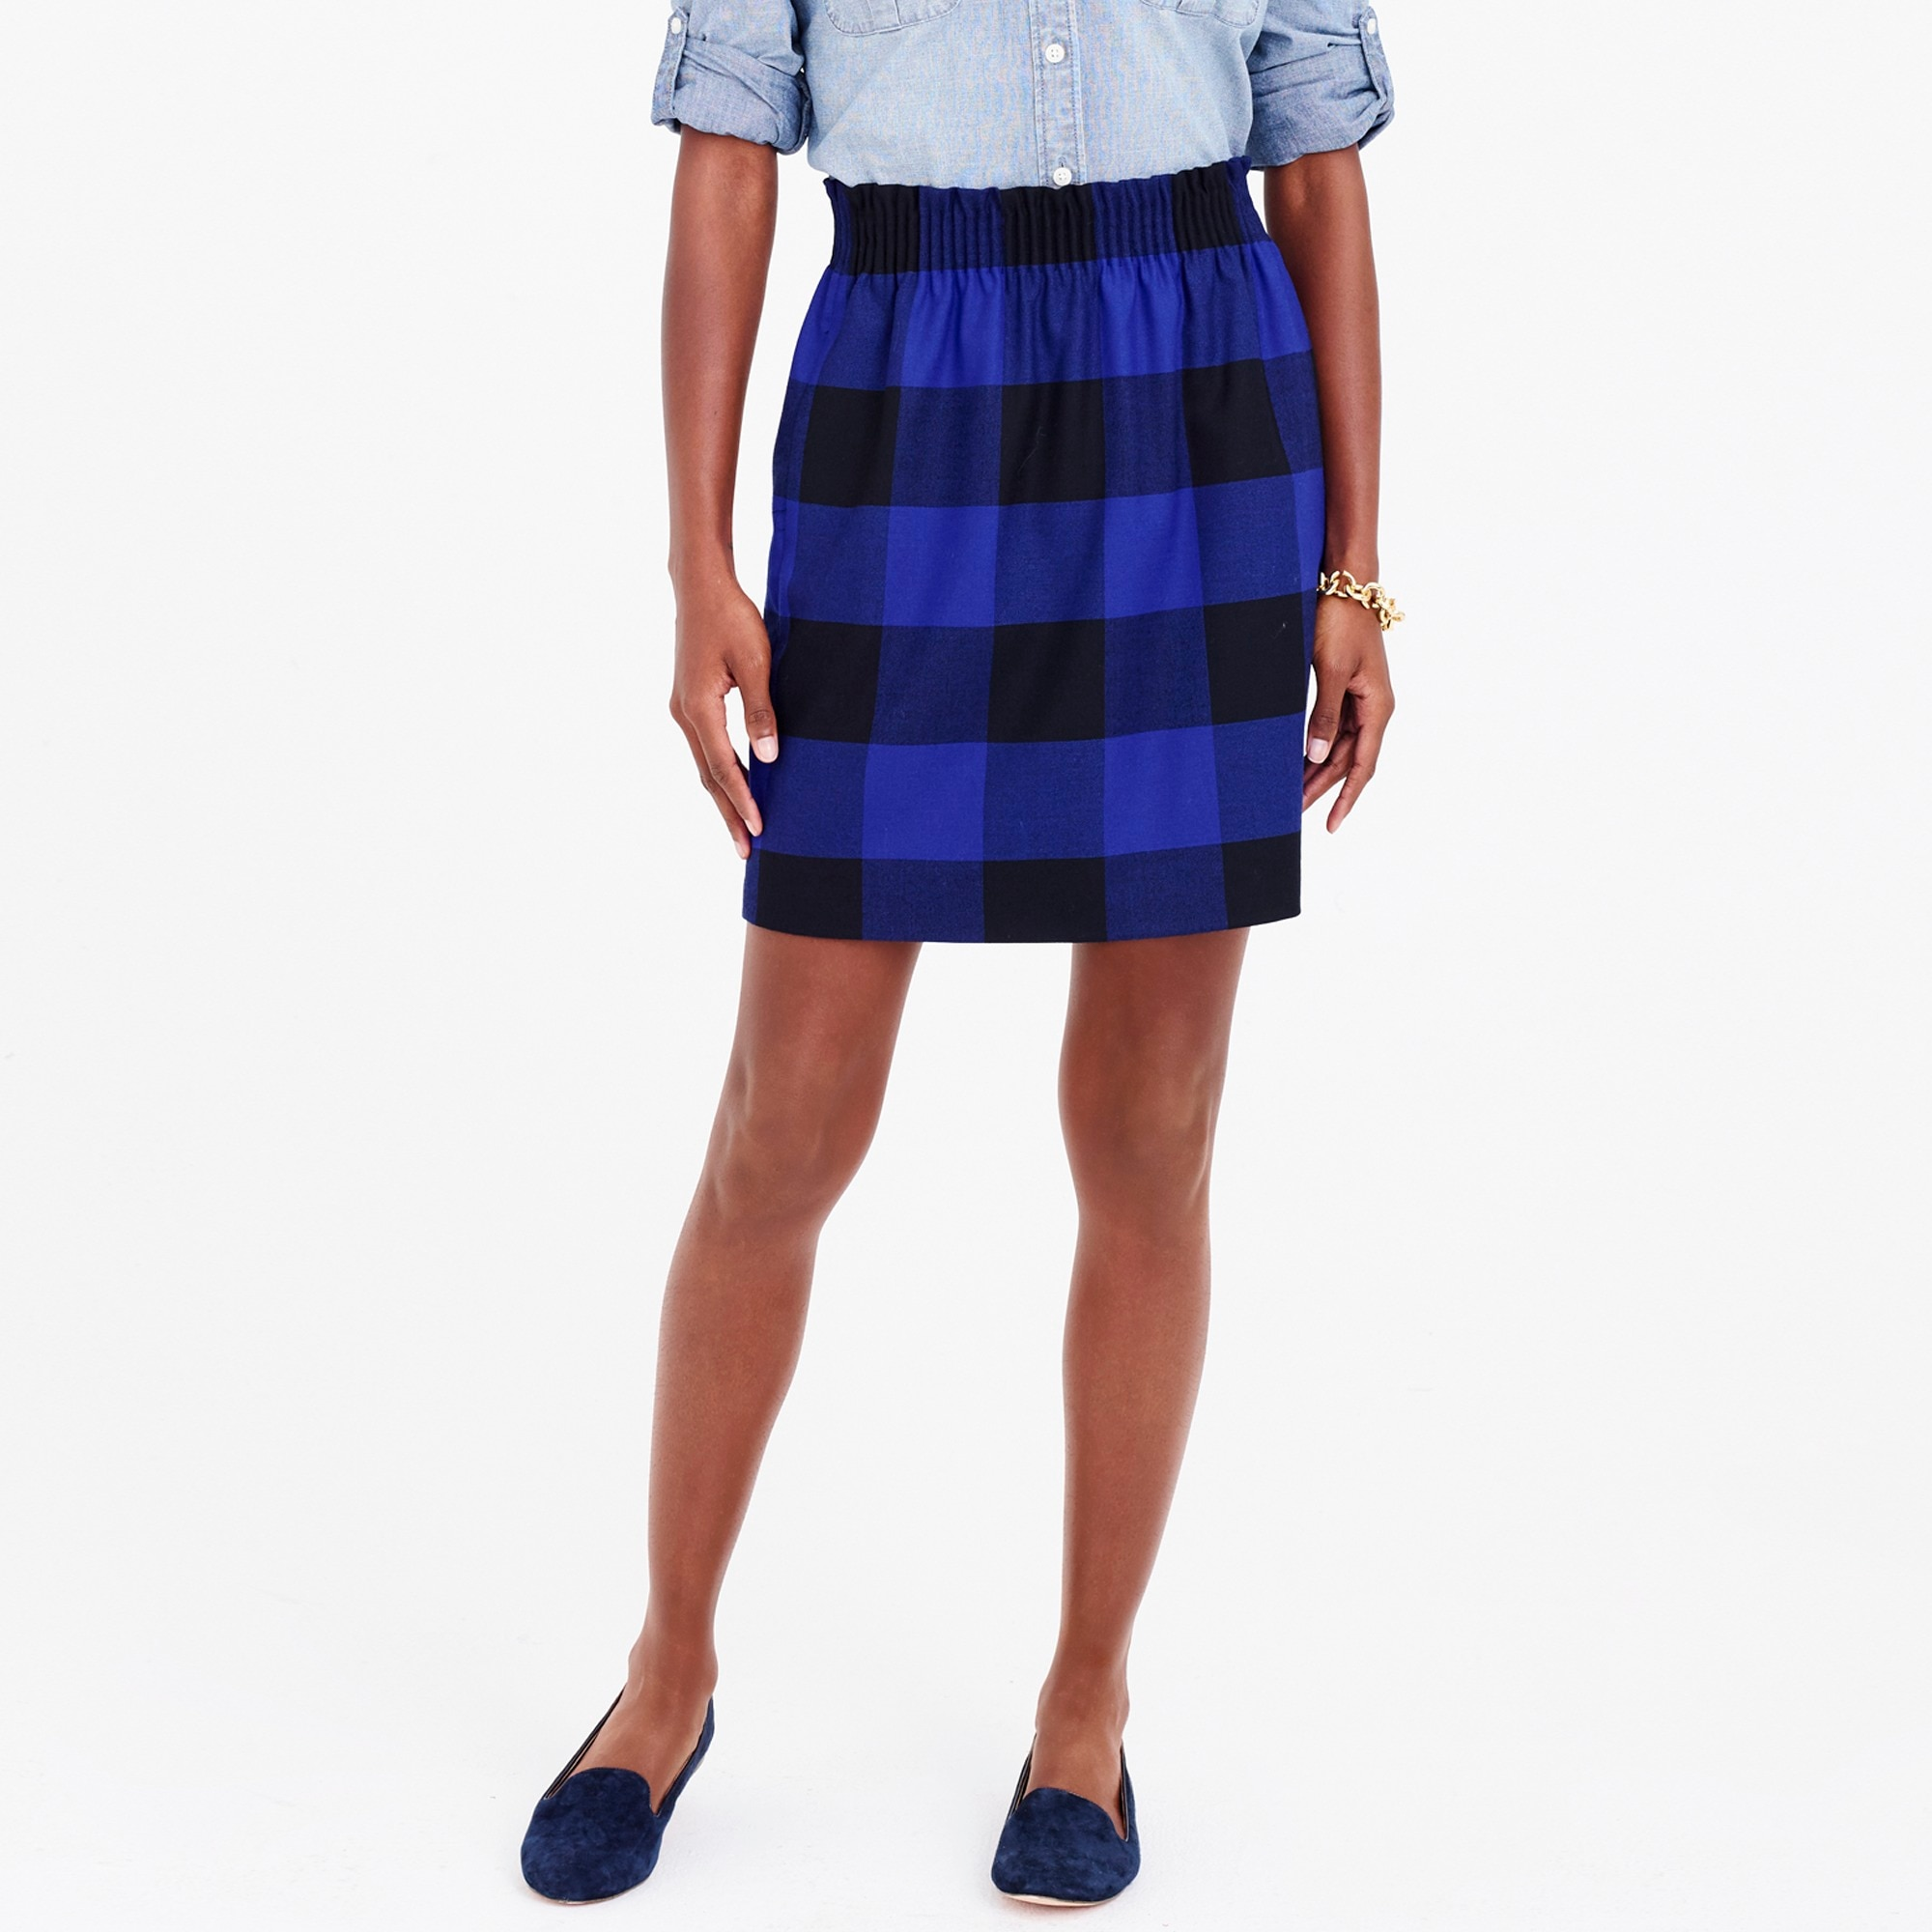 Image 1 for Wool sidewalk skirt in plaid